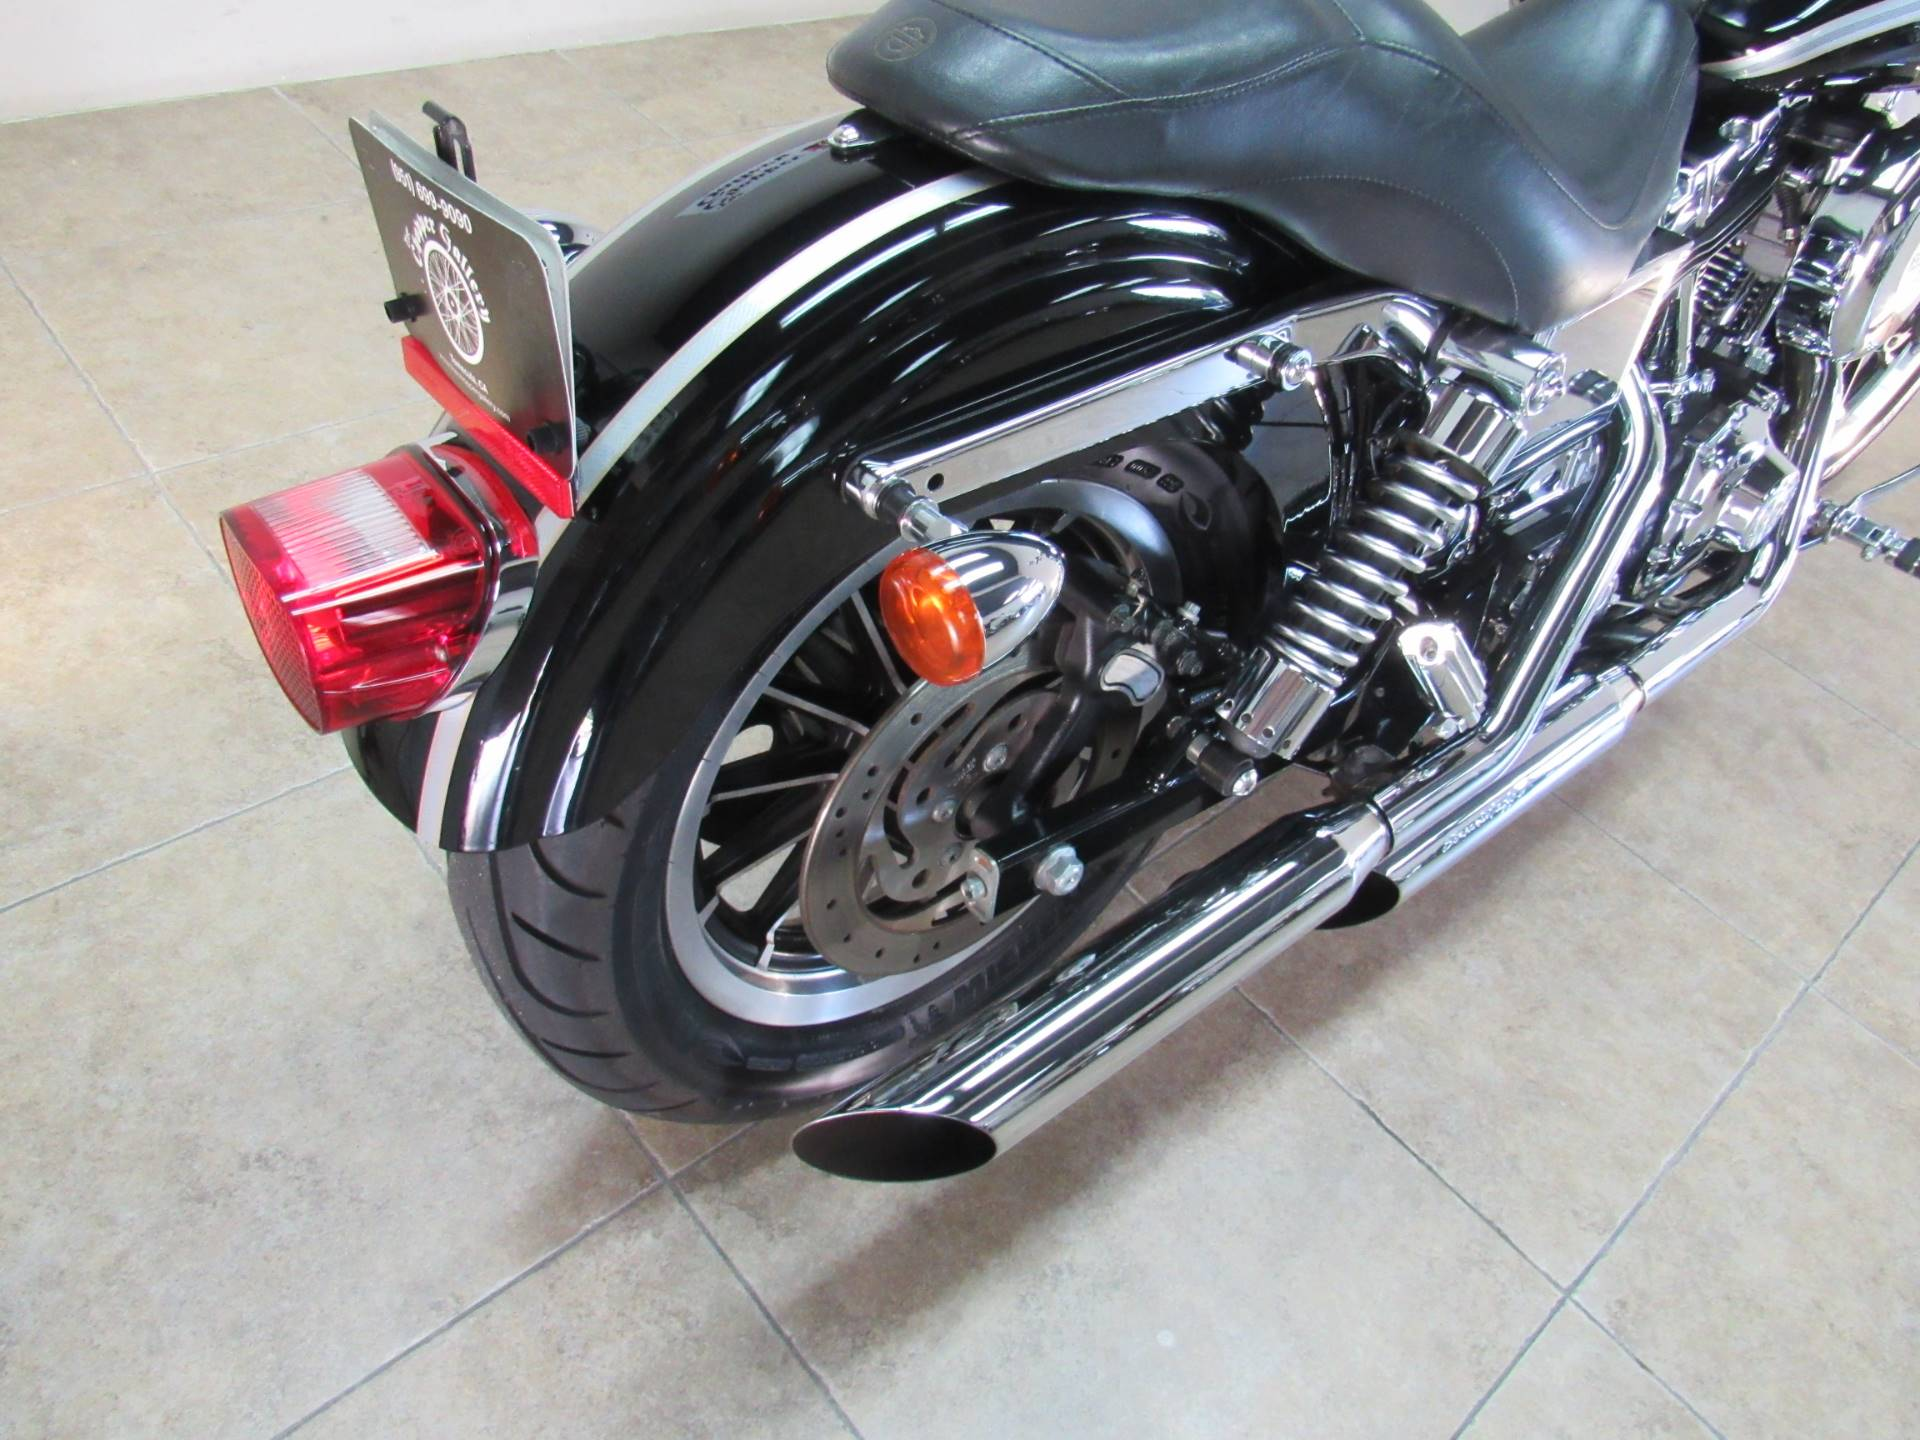 2003 Harley-Davidson FXDL Dyna Low Rider® in Temecula, California - Photo 10